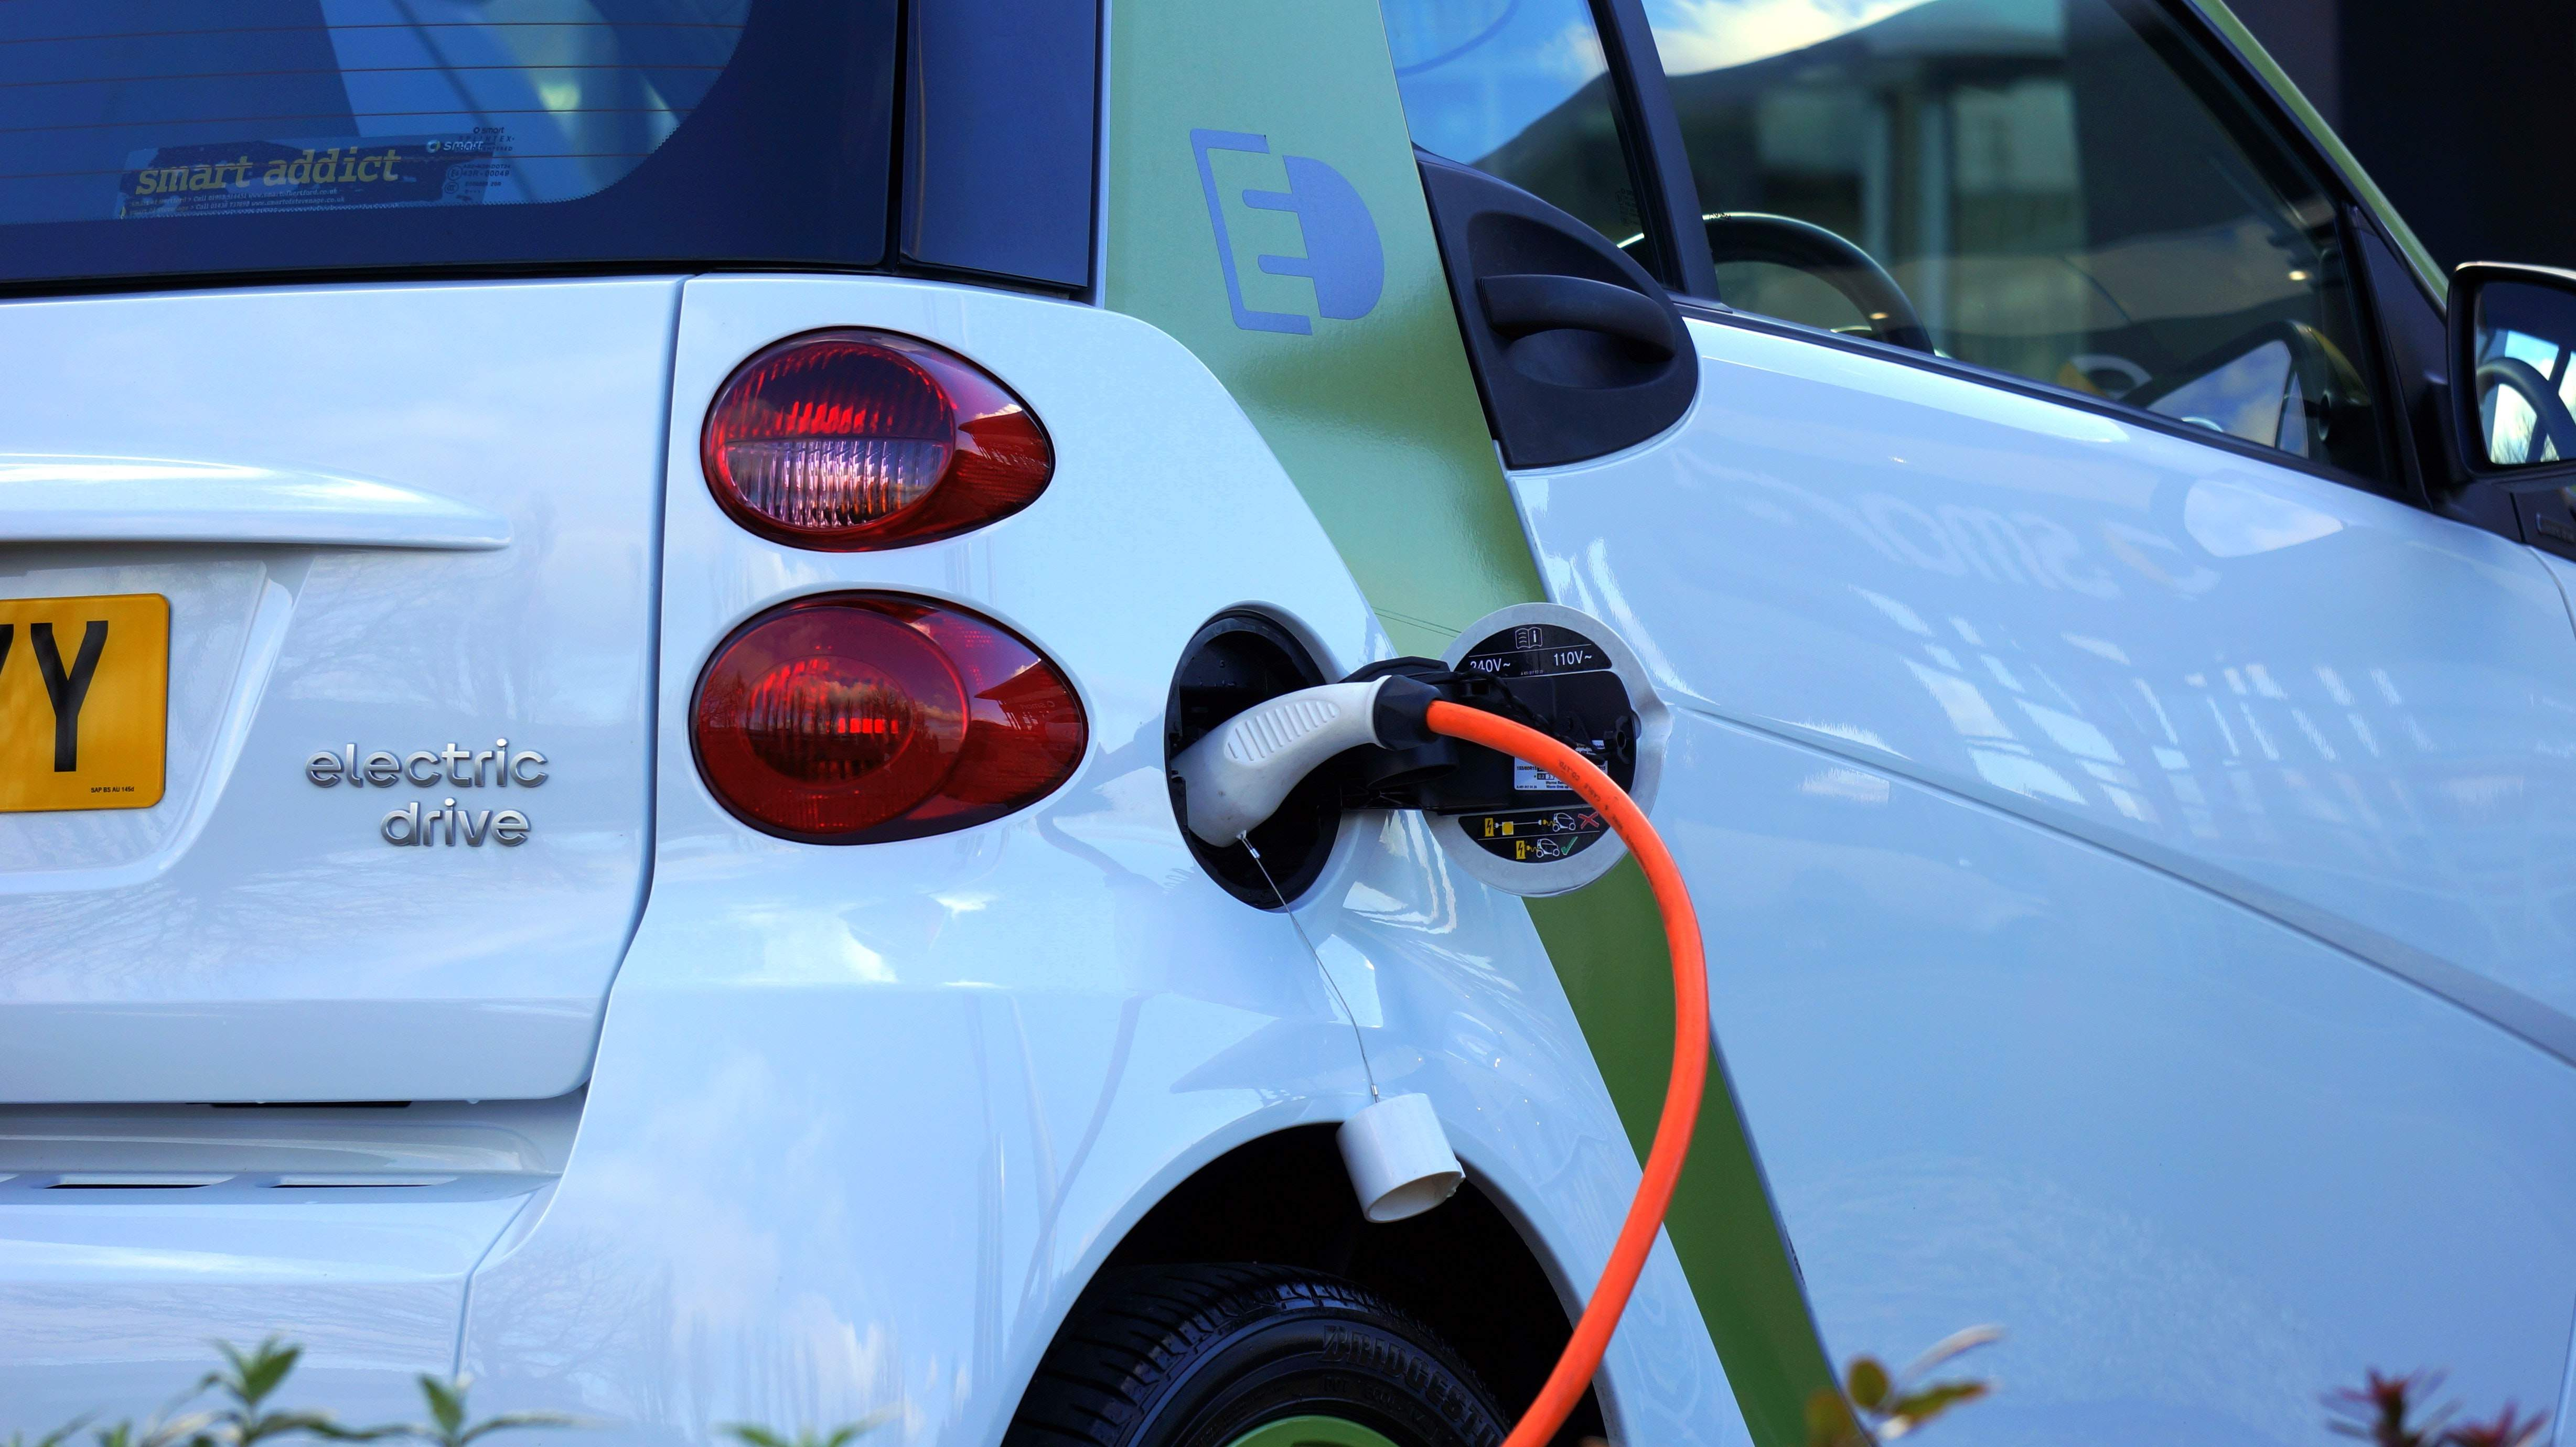 Low-carbon, electromobility, charging points